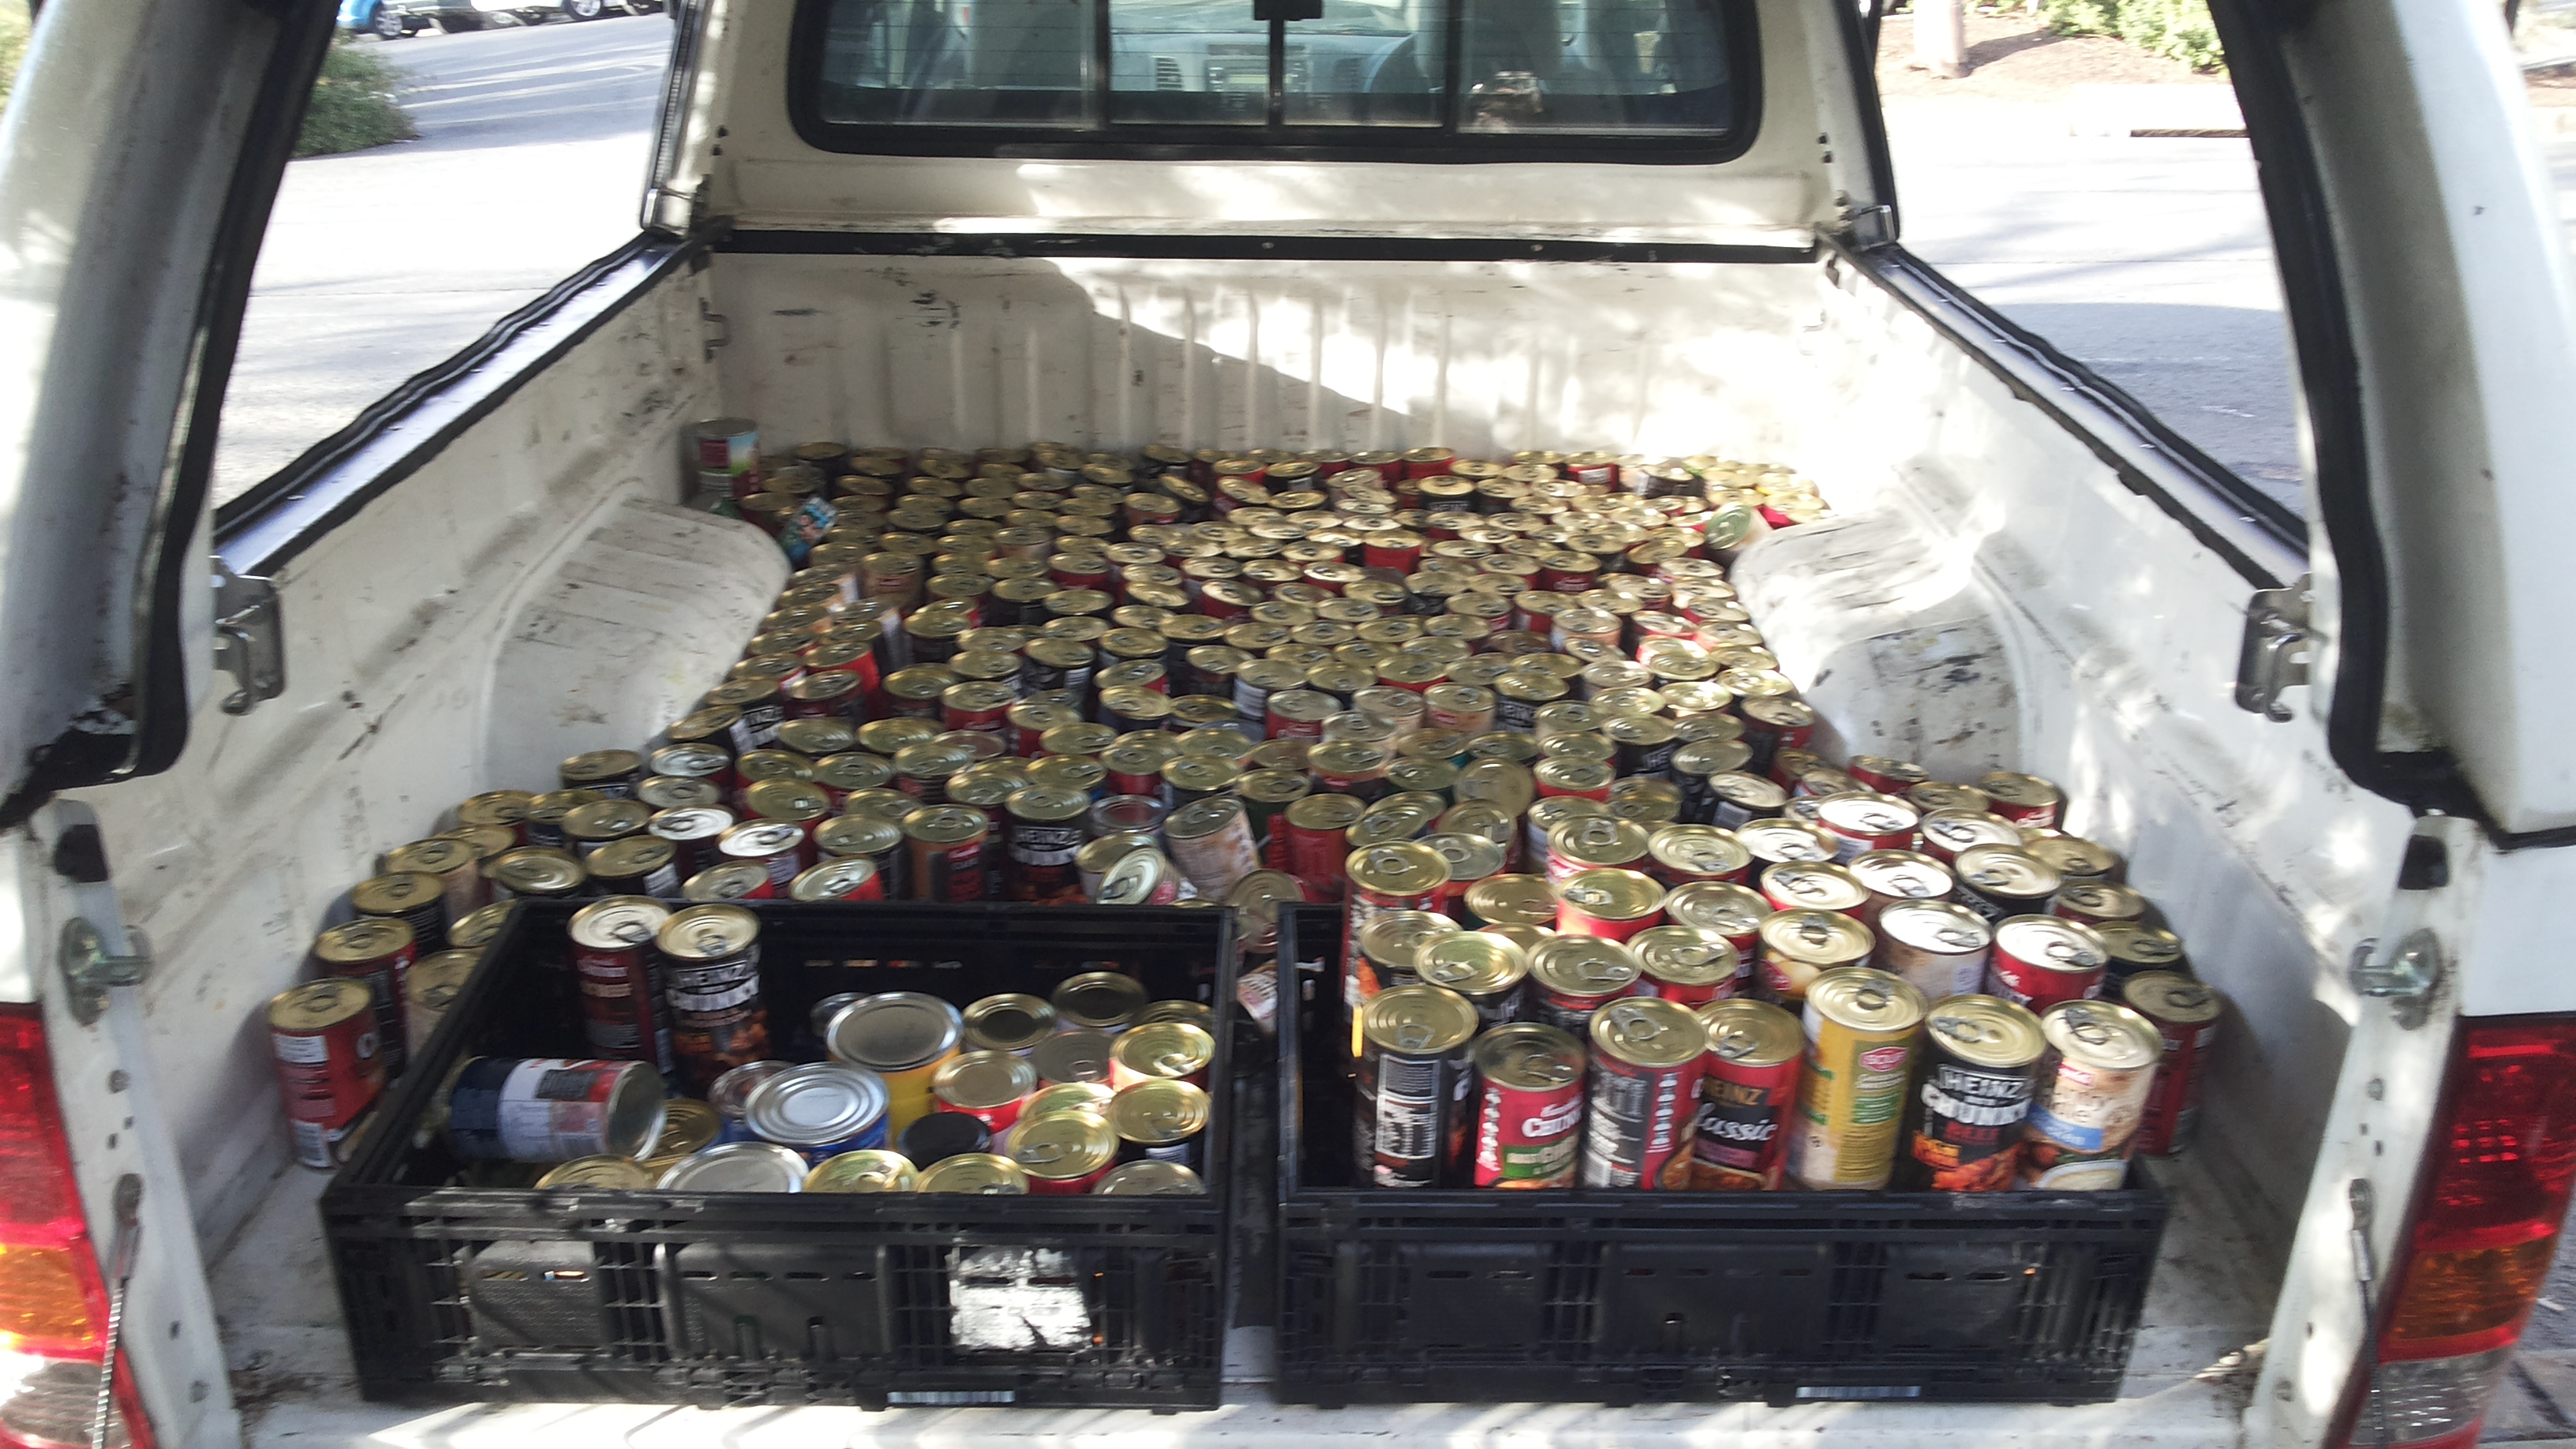 Over 400 cans!